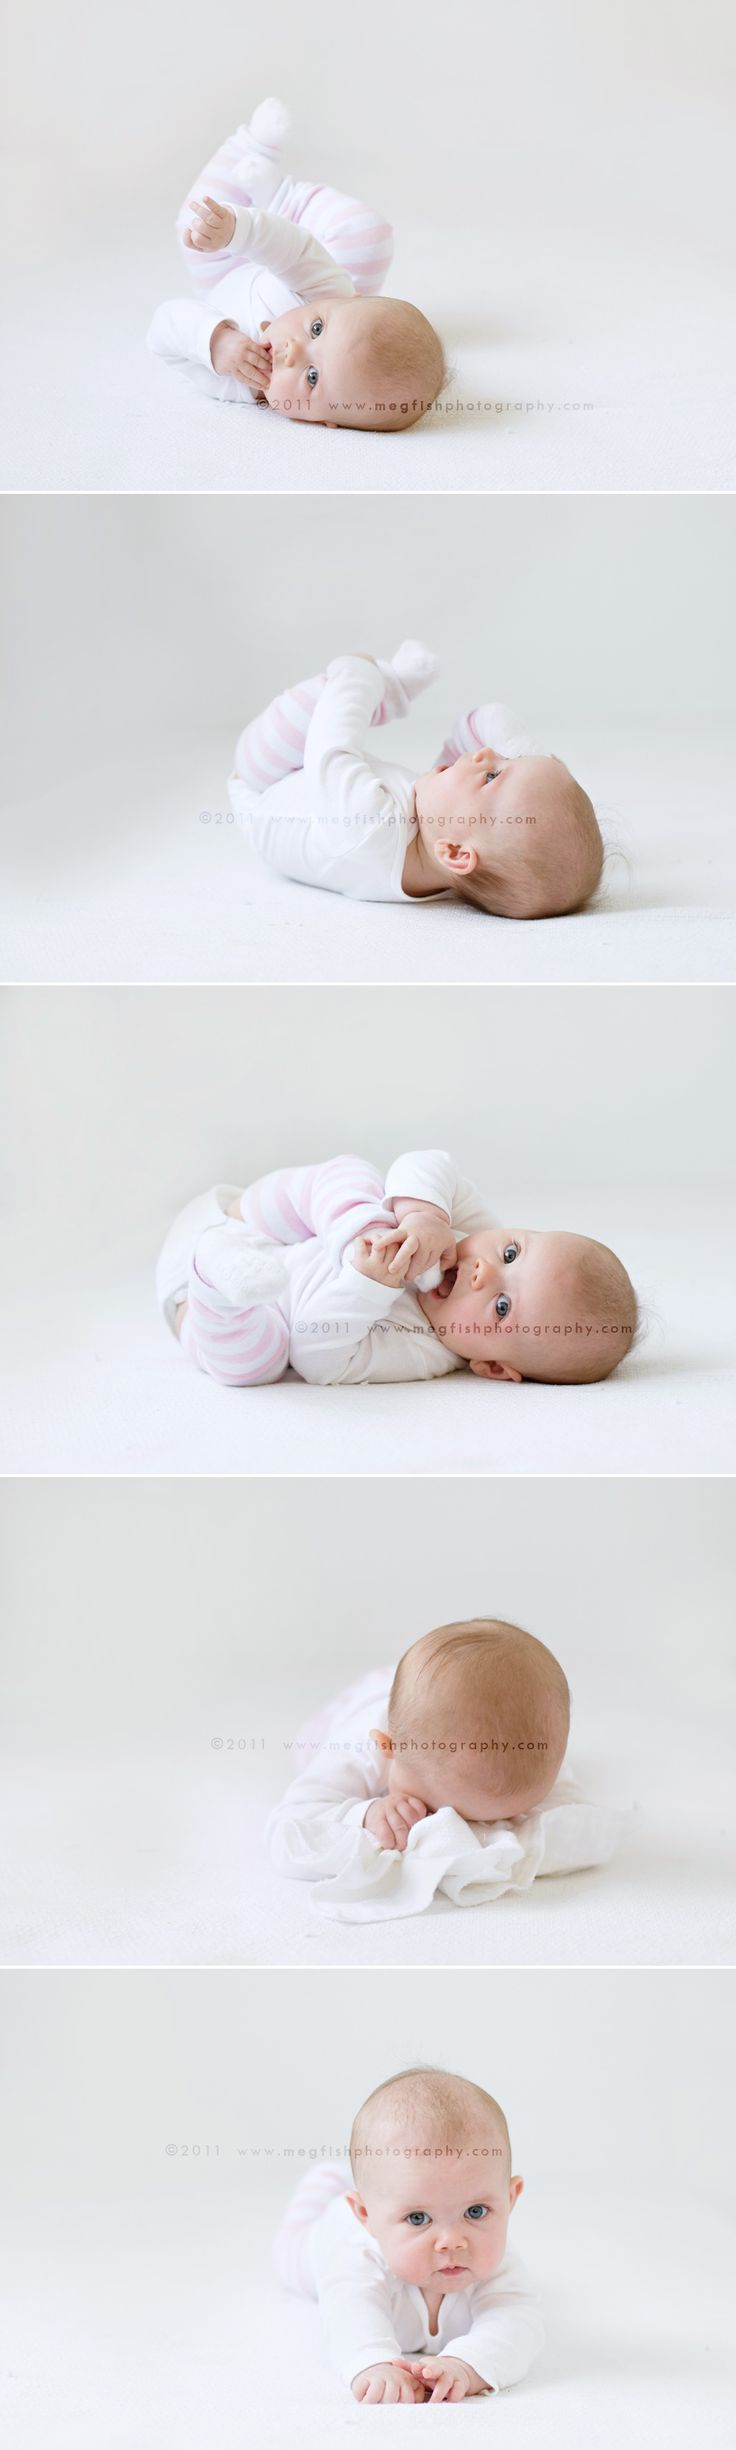 Cute: Photos Ideas, Baby Poses, 4 Month Baby Photo, 6 Month, 4 Month Old Picture, Photos Shoots, Baby Pictures, Baby Photography, Baby Photos